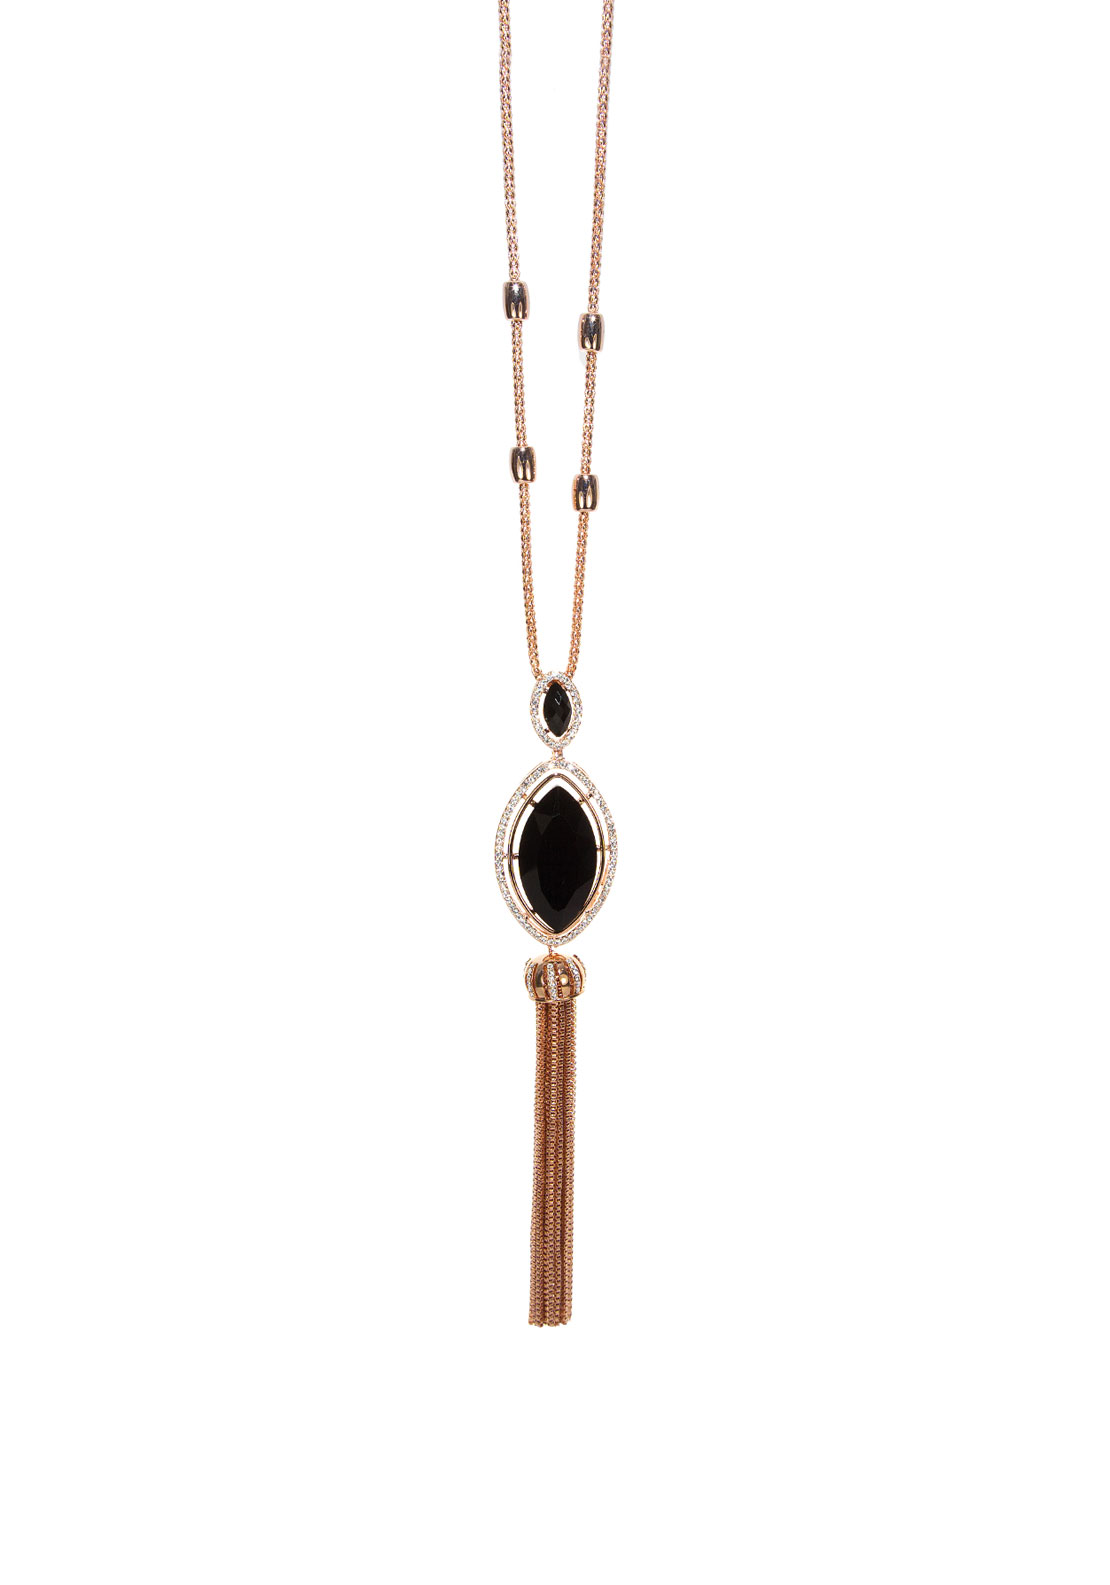 Absolute Jewellery Tassle Trim Long Necklace